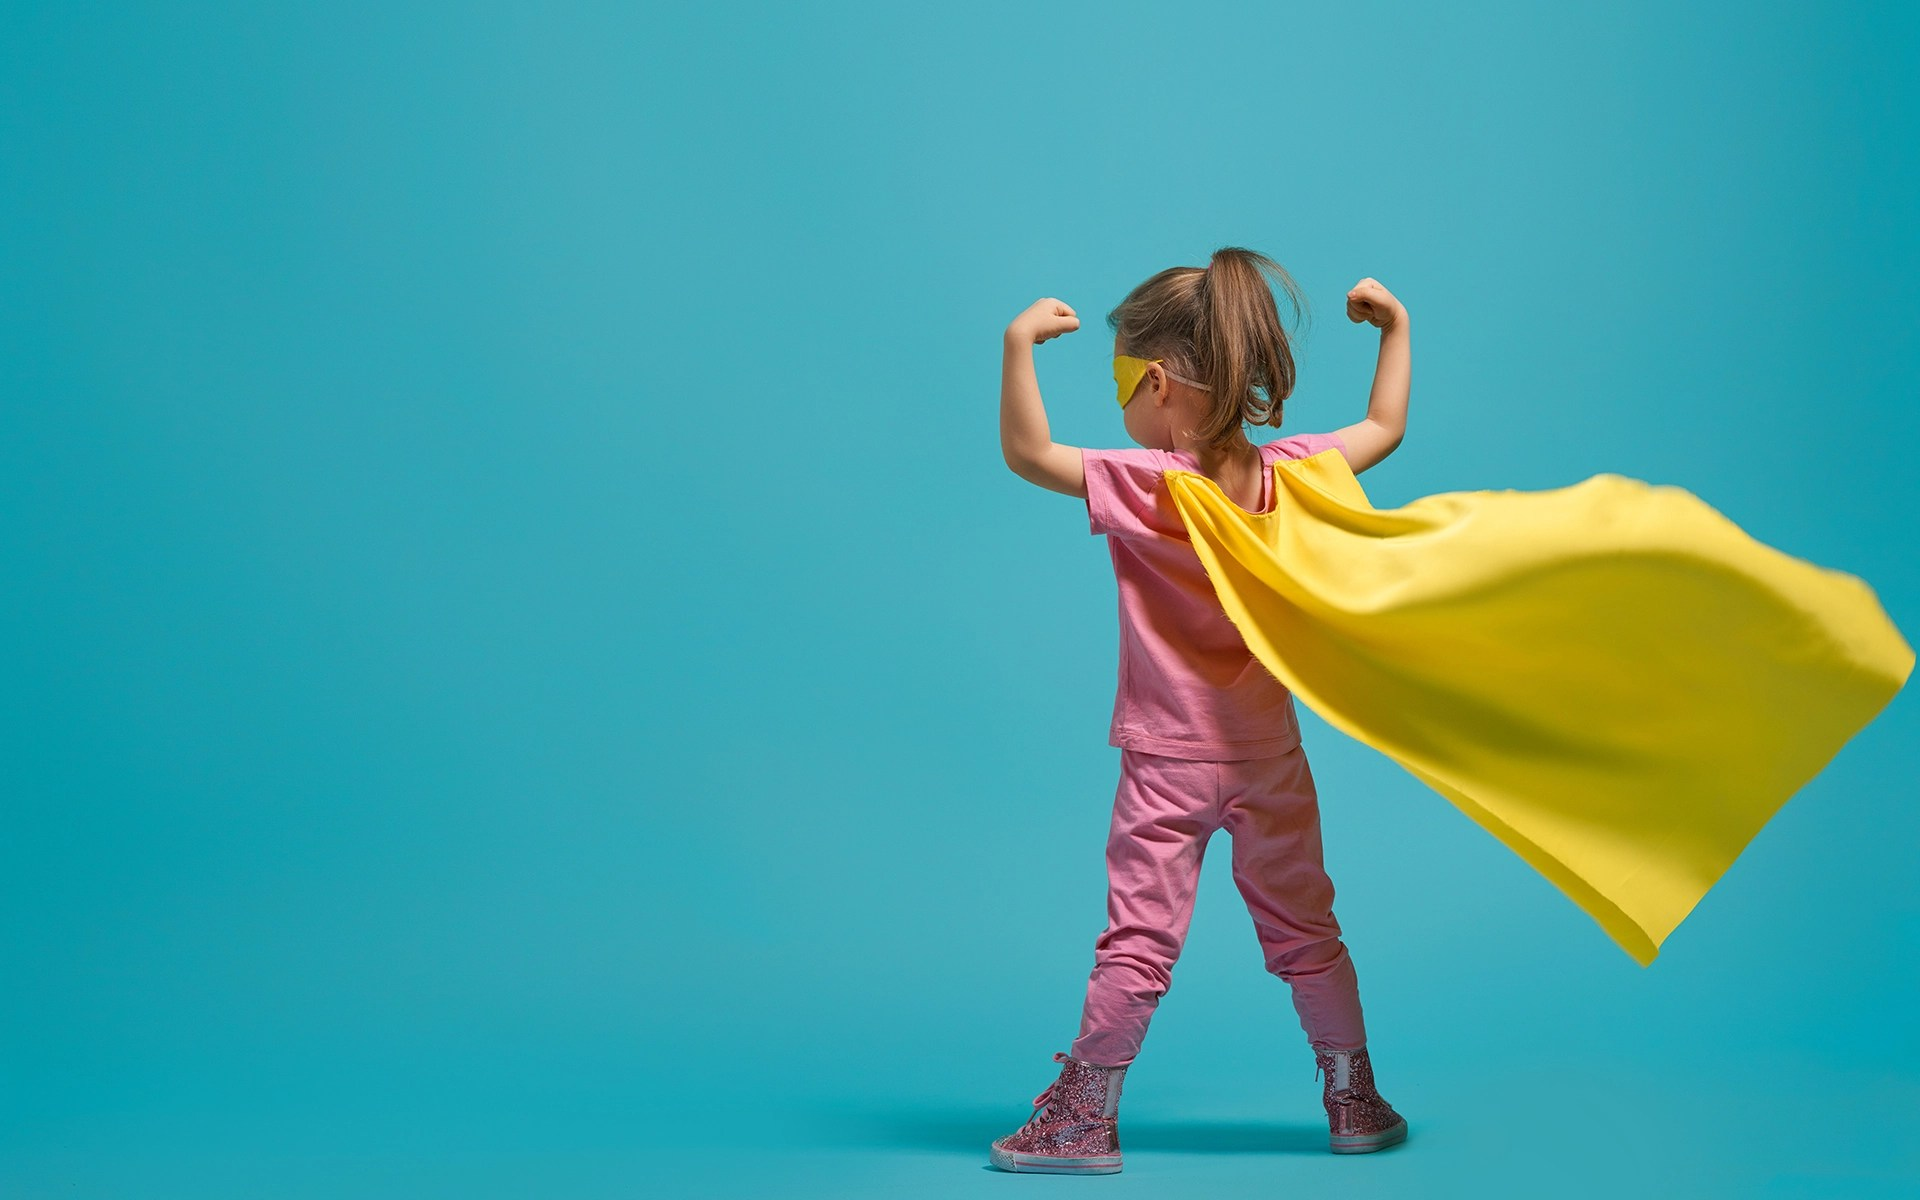 3 Mindful Practices for Resilient, Happy Kids - Little child playing superhero. Kid on the background of bright blue wall. Girl power concept. Yellow, pink and turquoise colors.